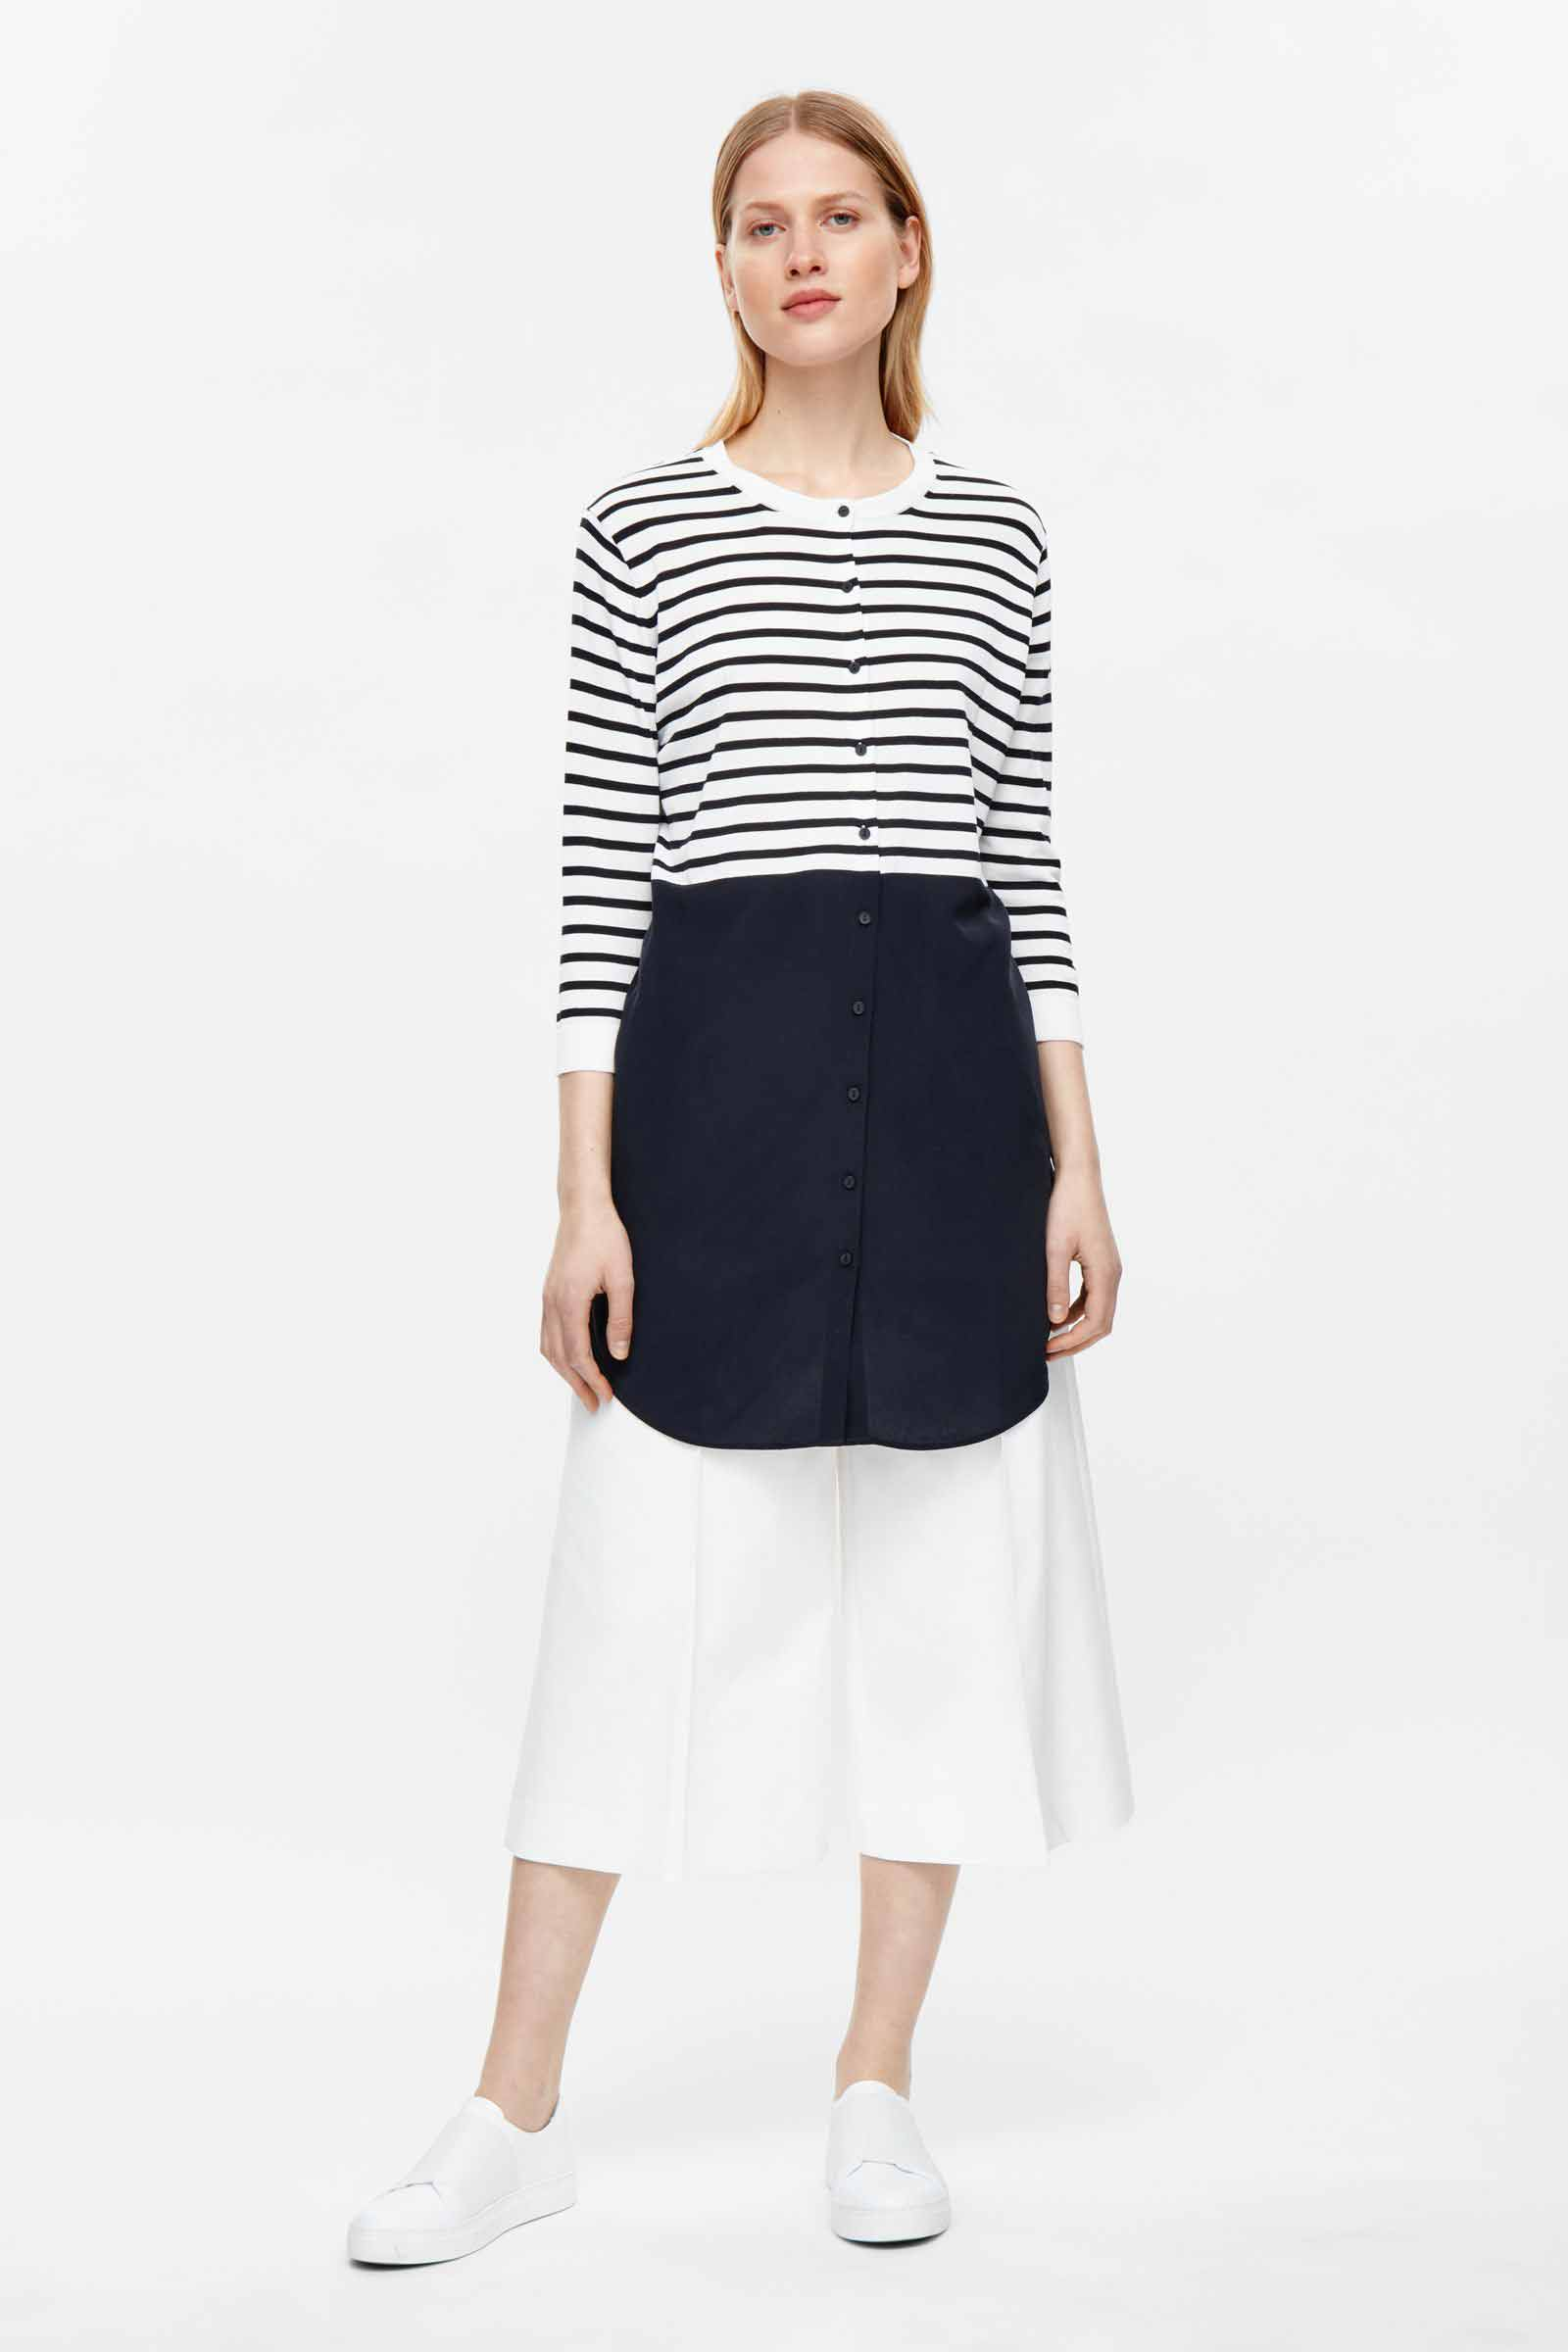 Nautical Trend New Perspective Cos Refined Stripes